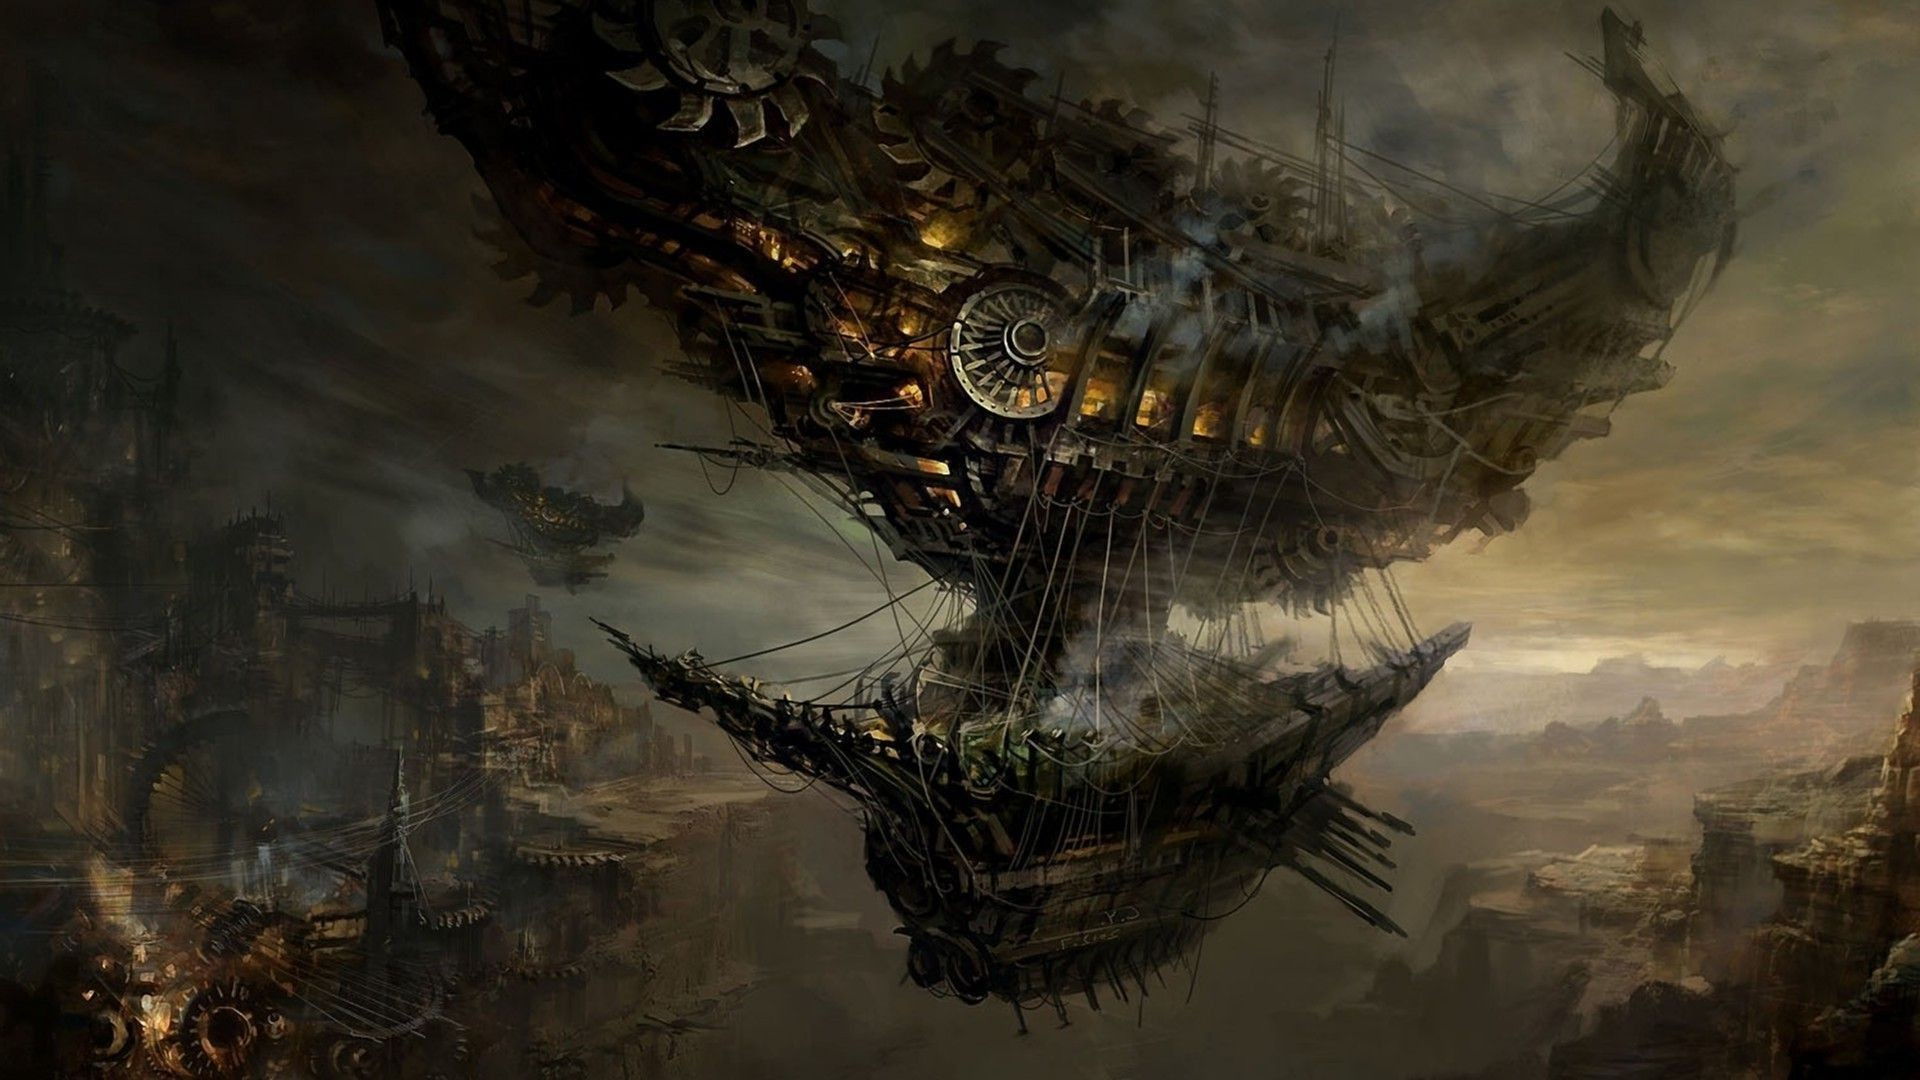 steampunk wallpapers pictures images; steampunk wallpaper 70 wallpapers hd  wallpapers …